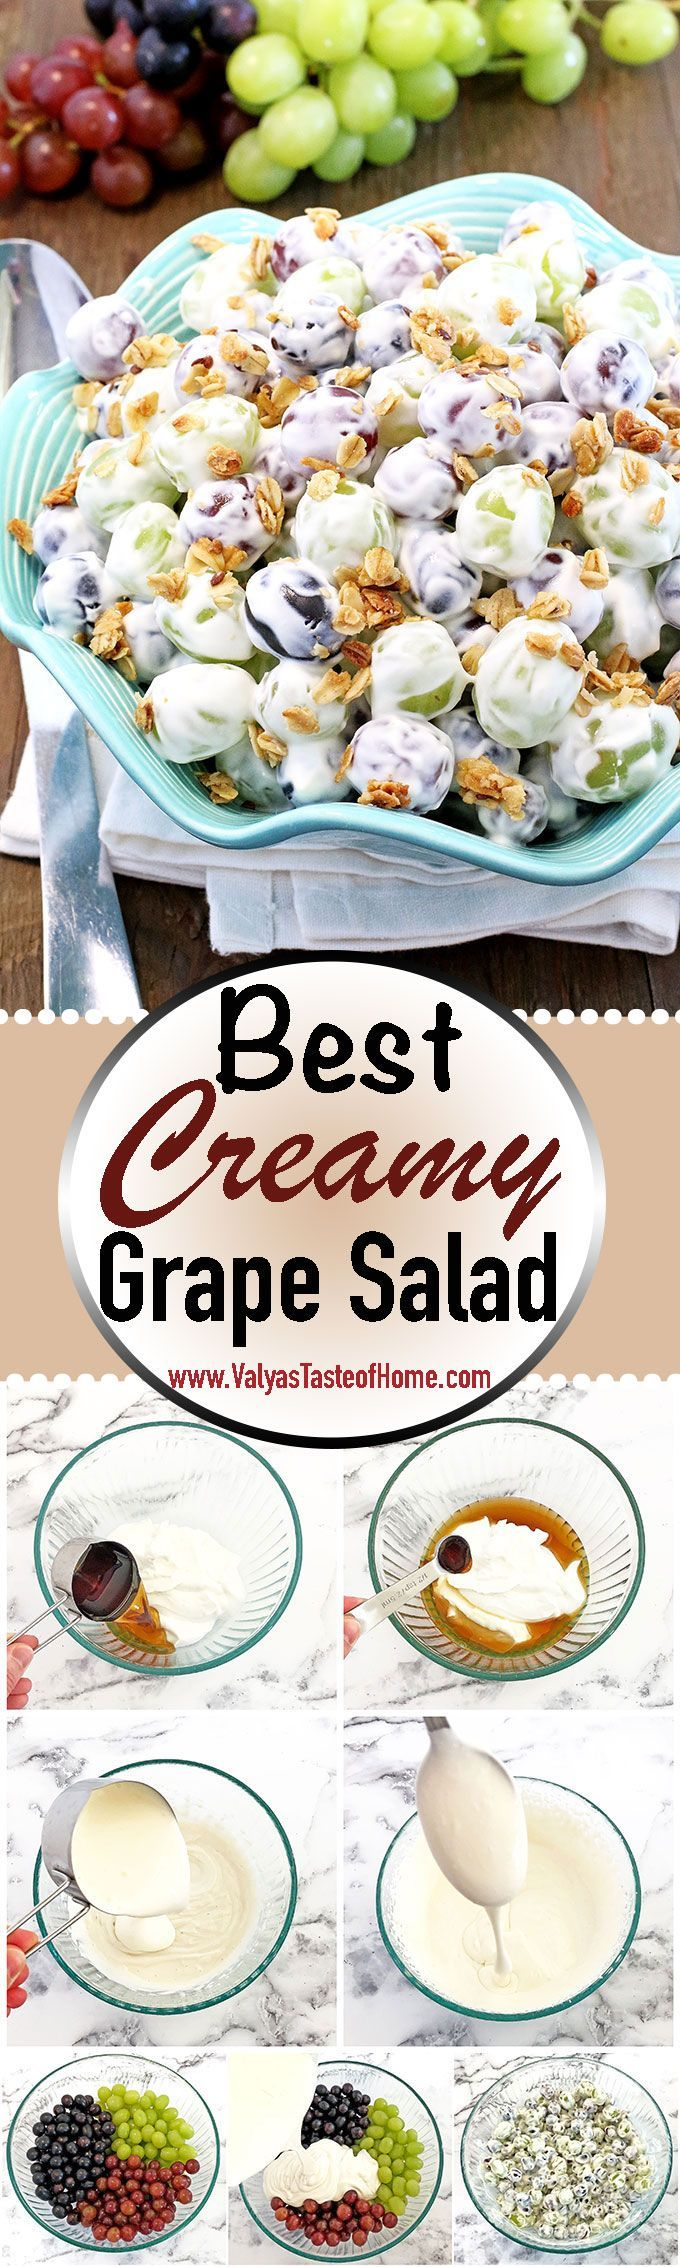 This Best Creamy Grape Salad is a delicious blend of fresh juicy grapes in a creamy vanilla yogurt dressing, sprinkled with homemade granola, and a touch of sweet and sour is a perfect way to sweeten up a picnic, backyard family gathering or any summer occasion. #fruitsalad #grapesalad #valyastasteofhome #bestcreamygrapesalad #vanillayogurt This Best Creamy Grape Salad is a delicious blend of fresh juicy grapes in a creamy vanilla yogurt dressing, sprinkled with homemade granola, and a touch of #vanillayogurt